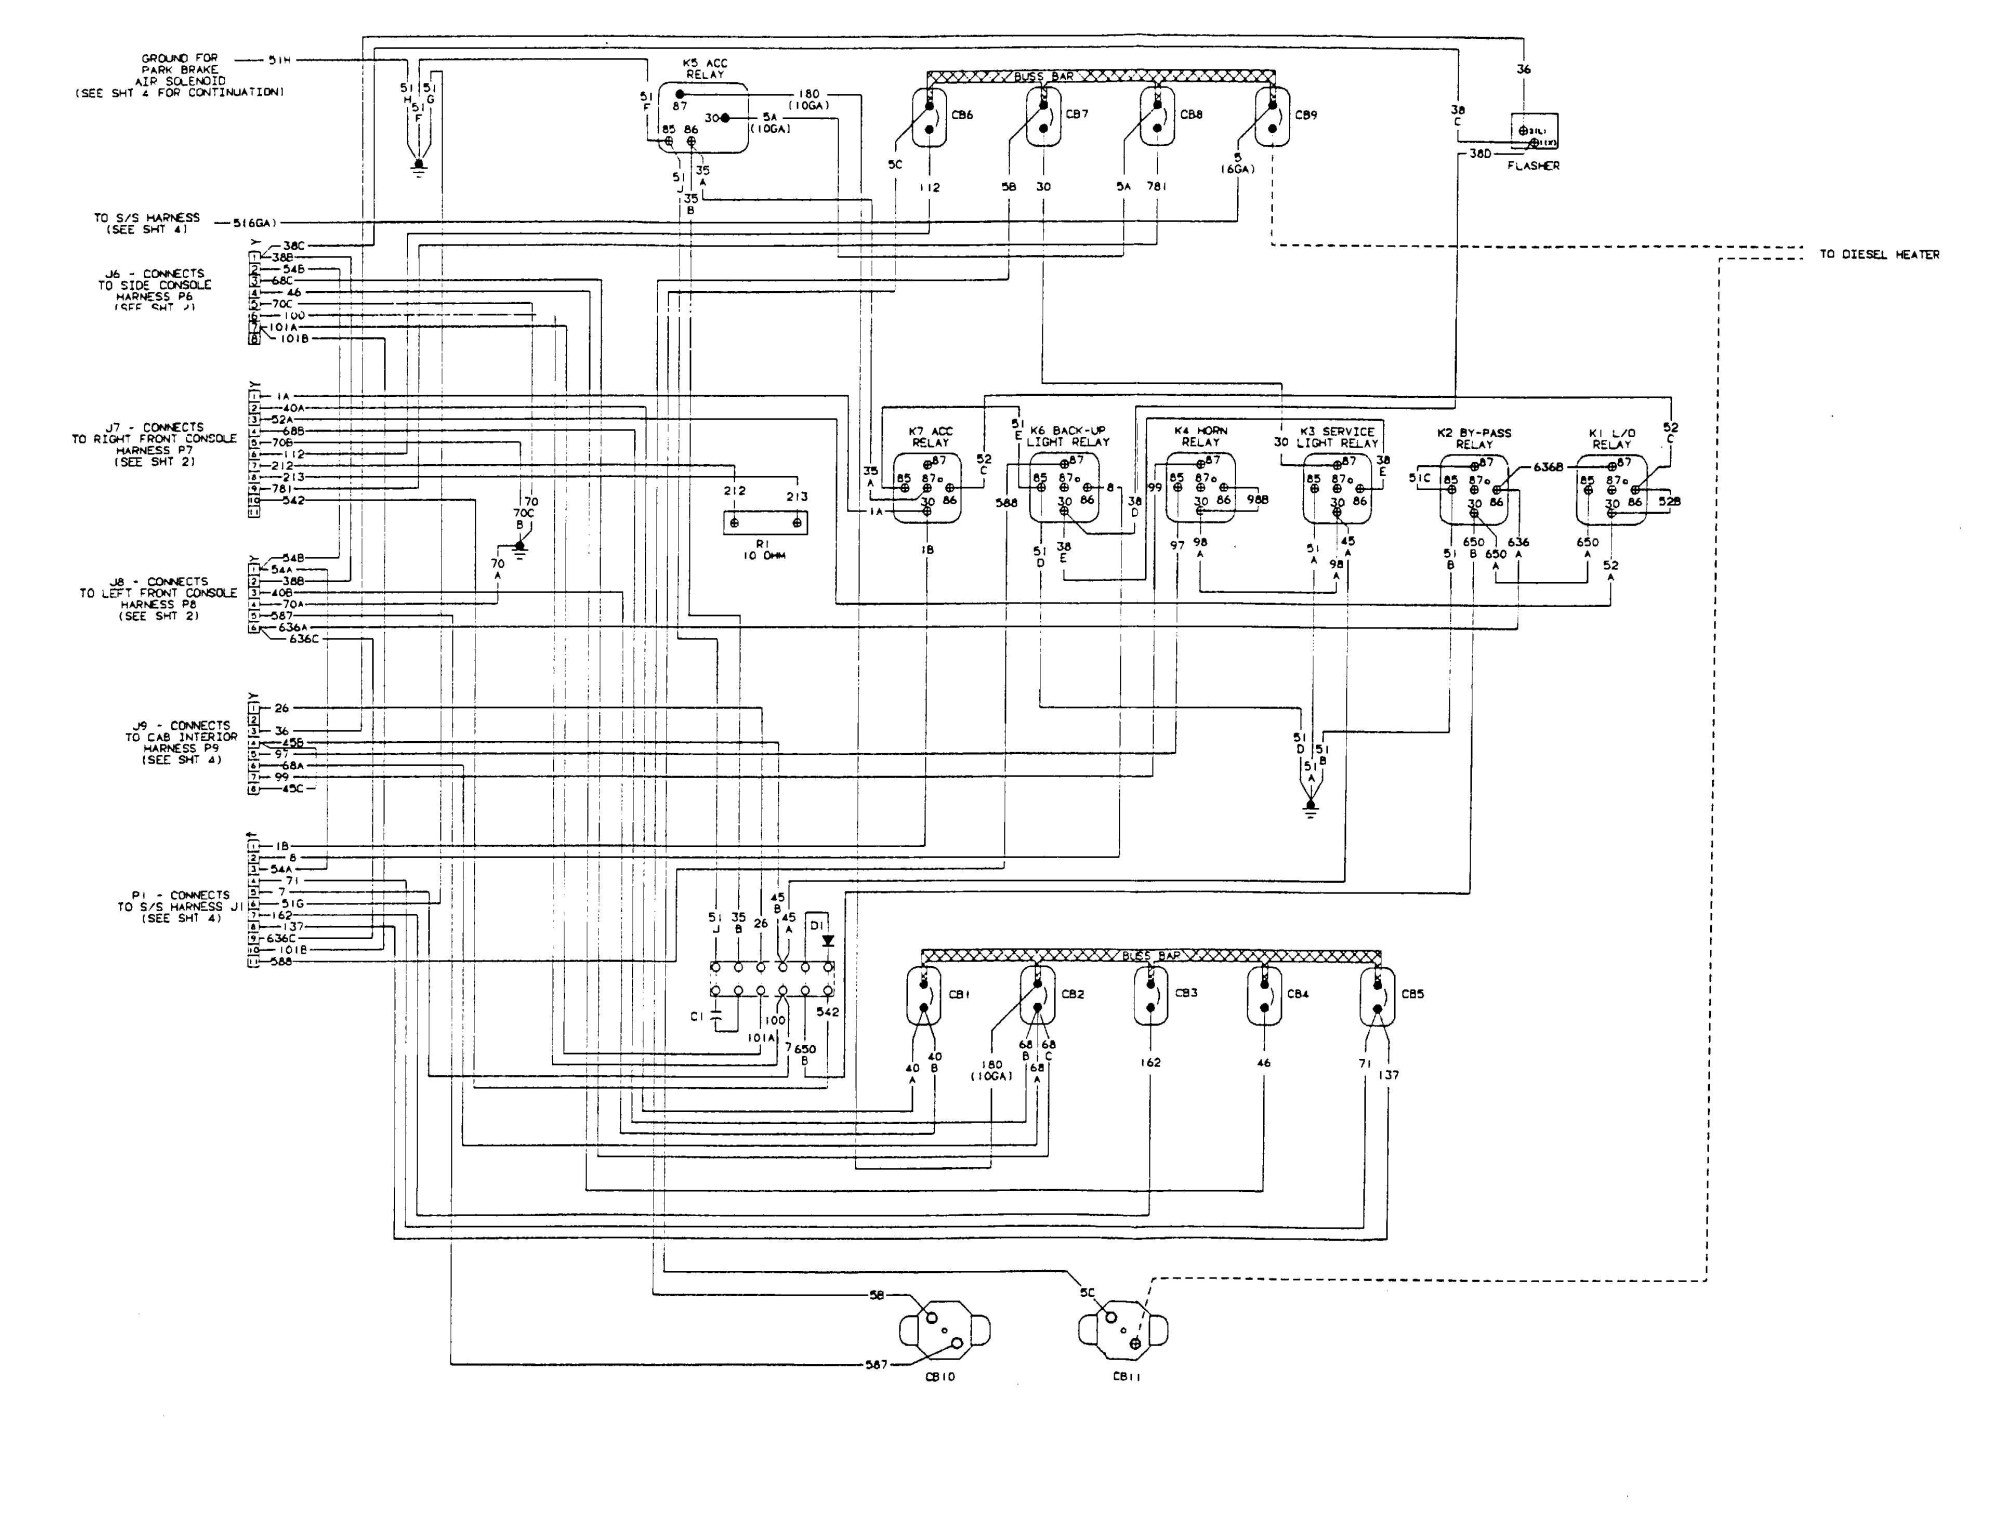 hight resolution of drc wiring diagram wiring diagram operations20 ton demag wiring diagram wiring diagrams terms drc wiring diagram